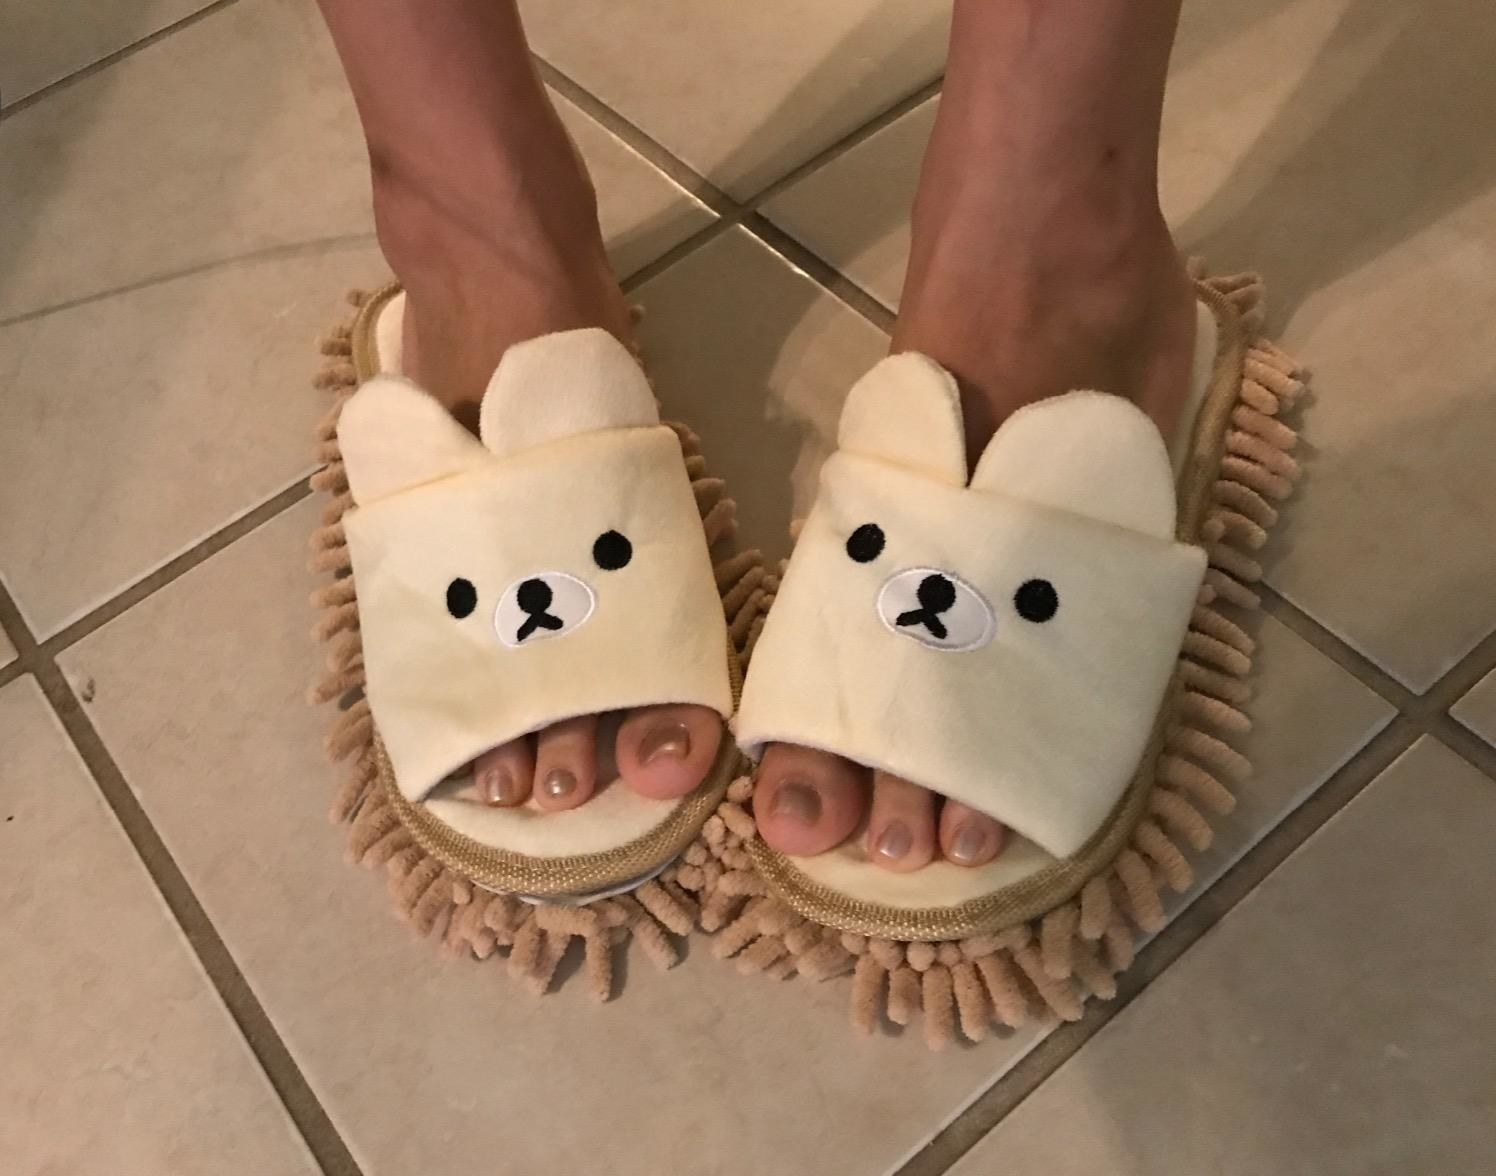 Reviewer wearing the slippers in beige with a face and ears on the top and light brown mop on the bottom.